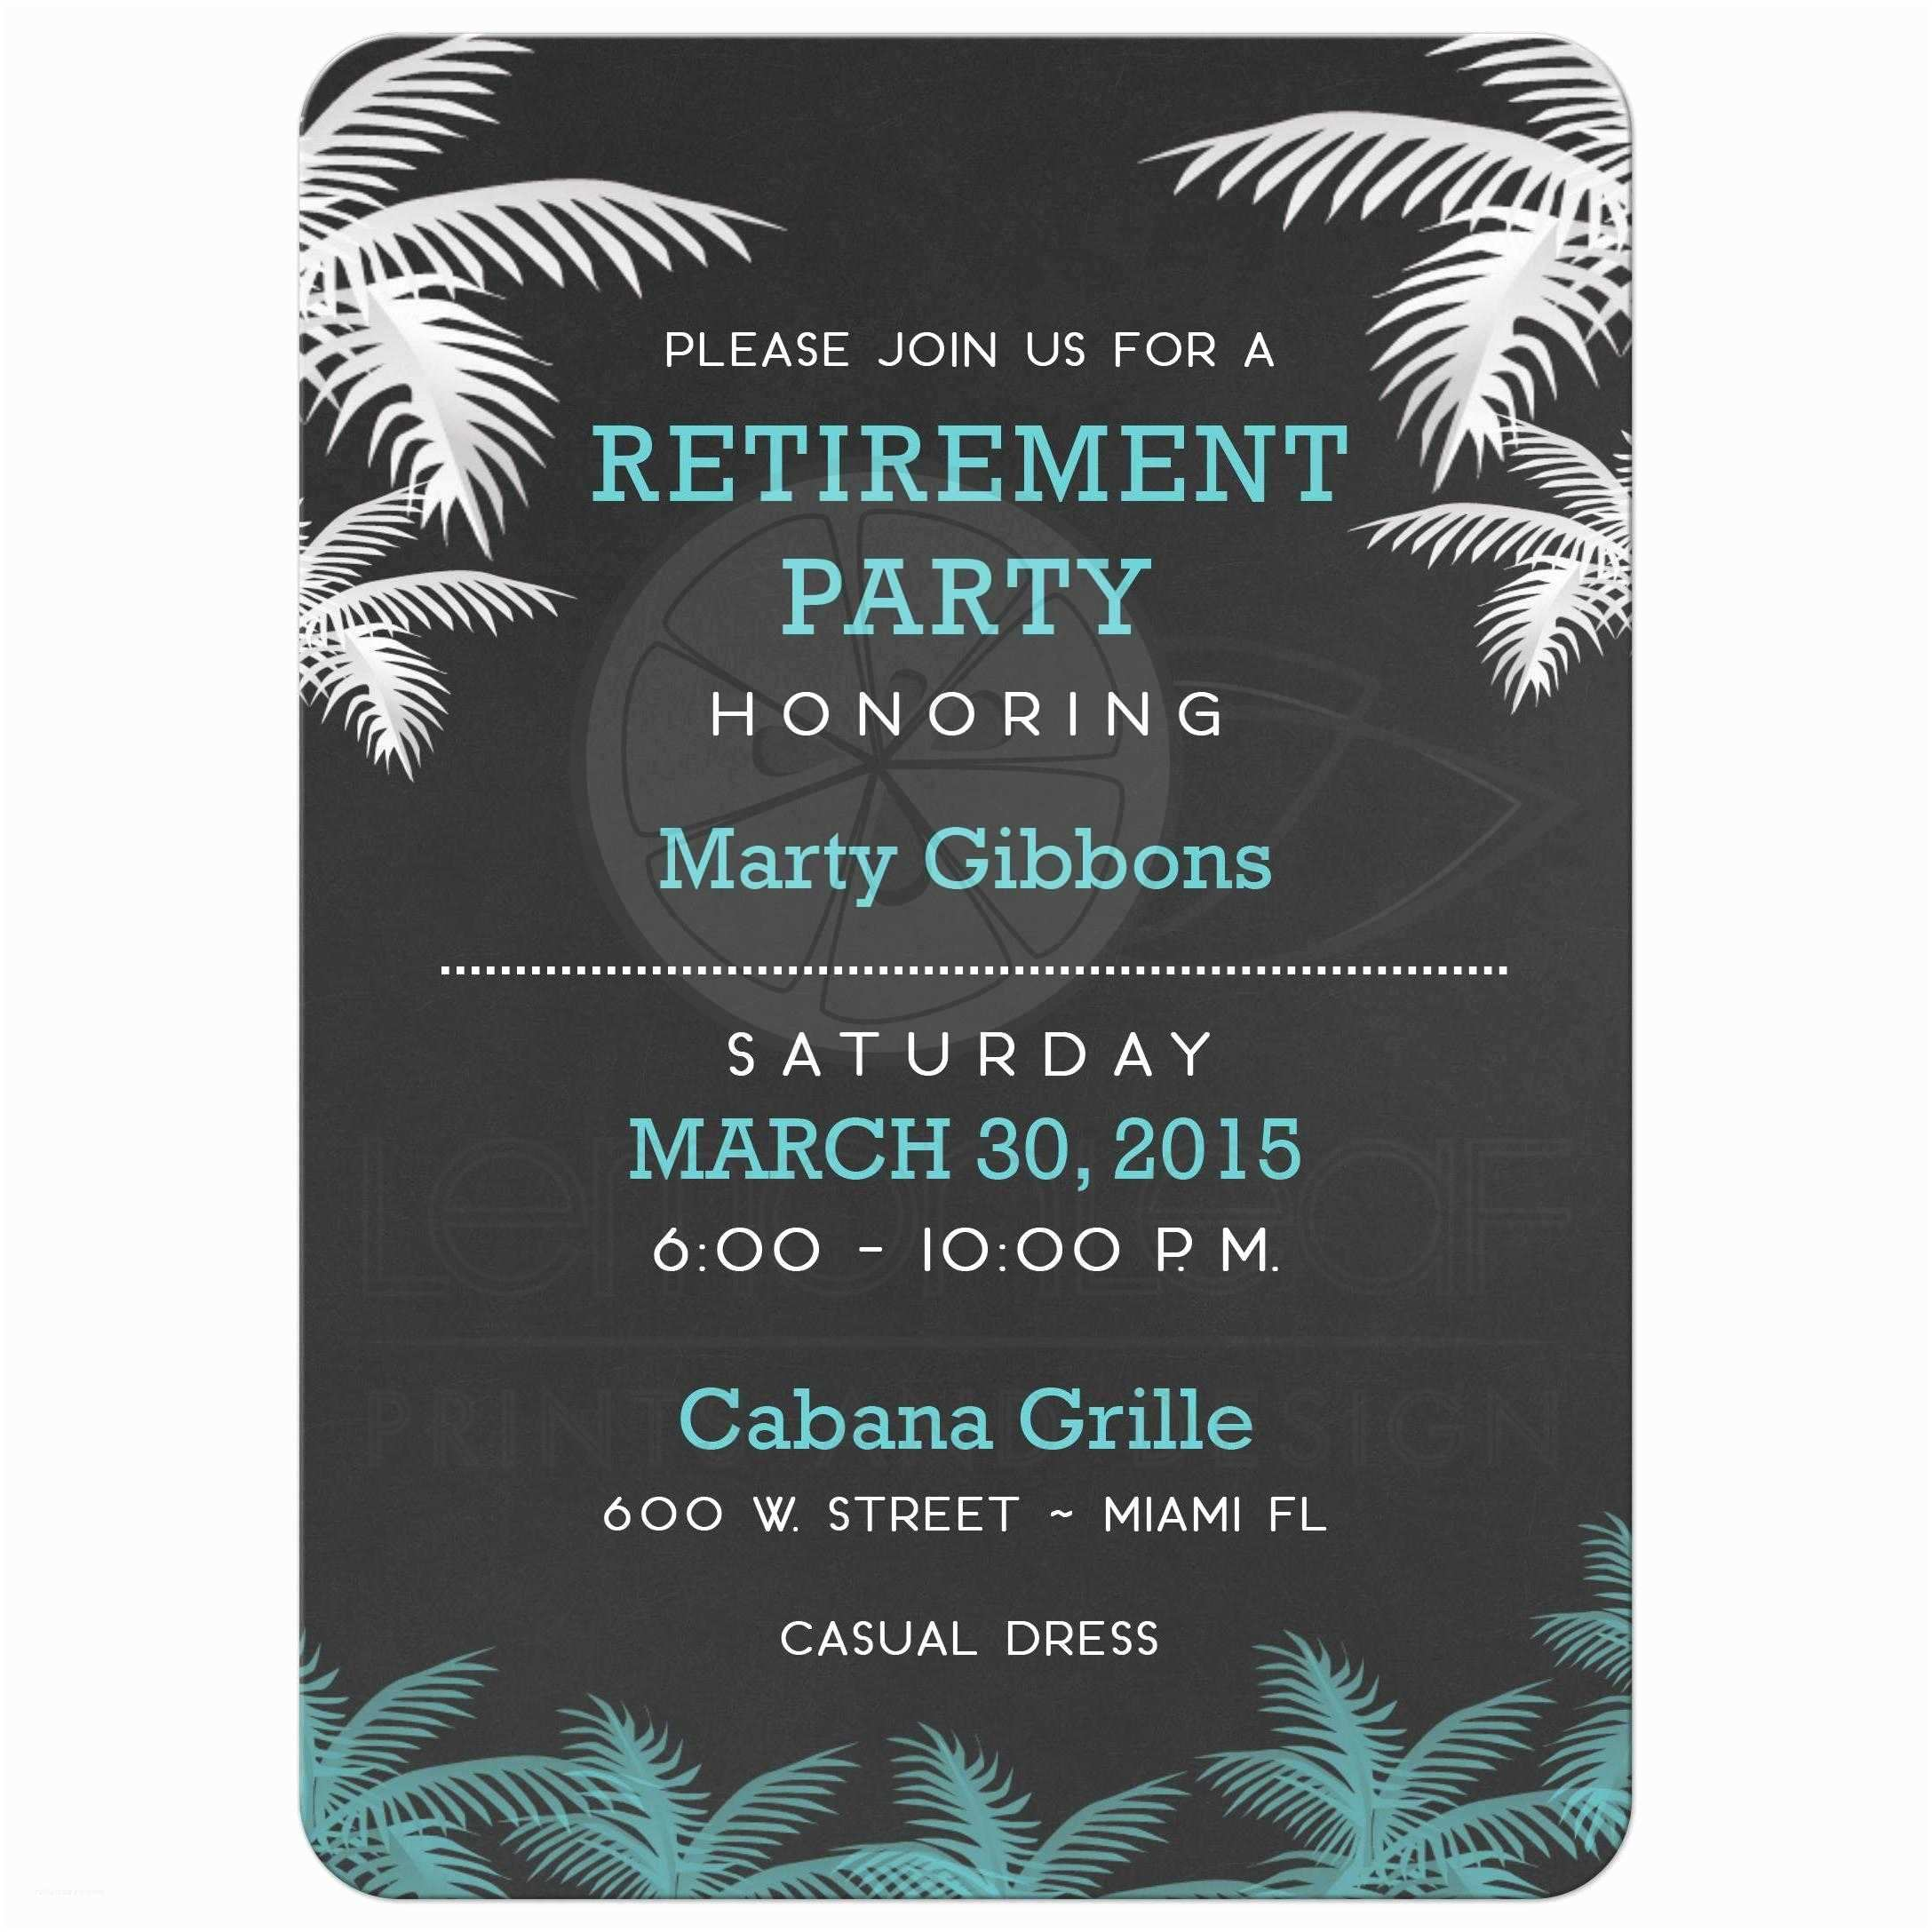 Retirement Party Invitations Palm Tree Tropical Chalkboard Retirement Party Invitation